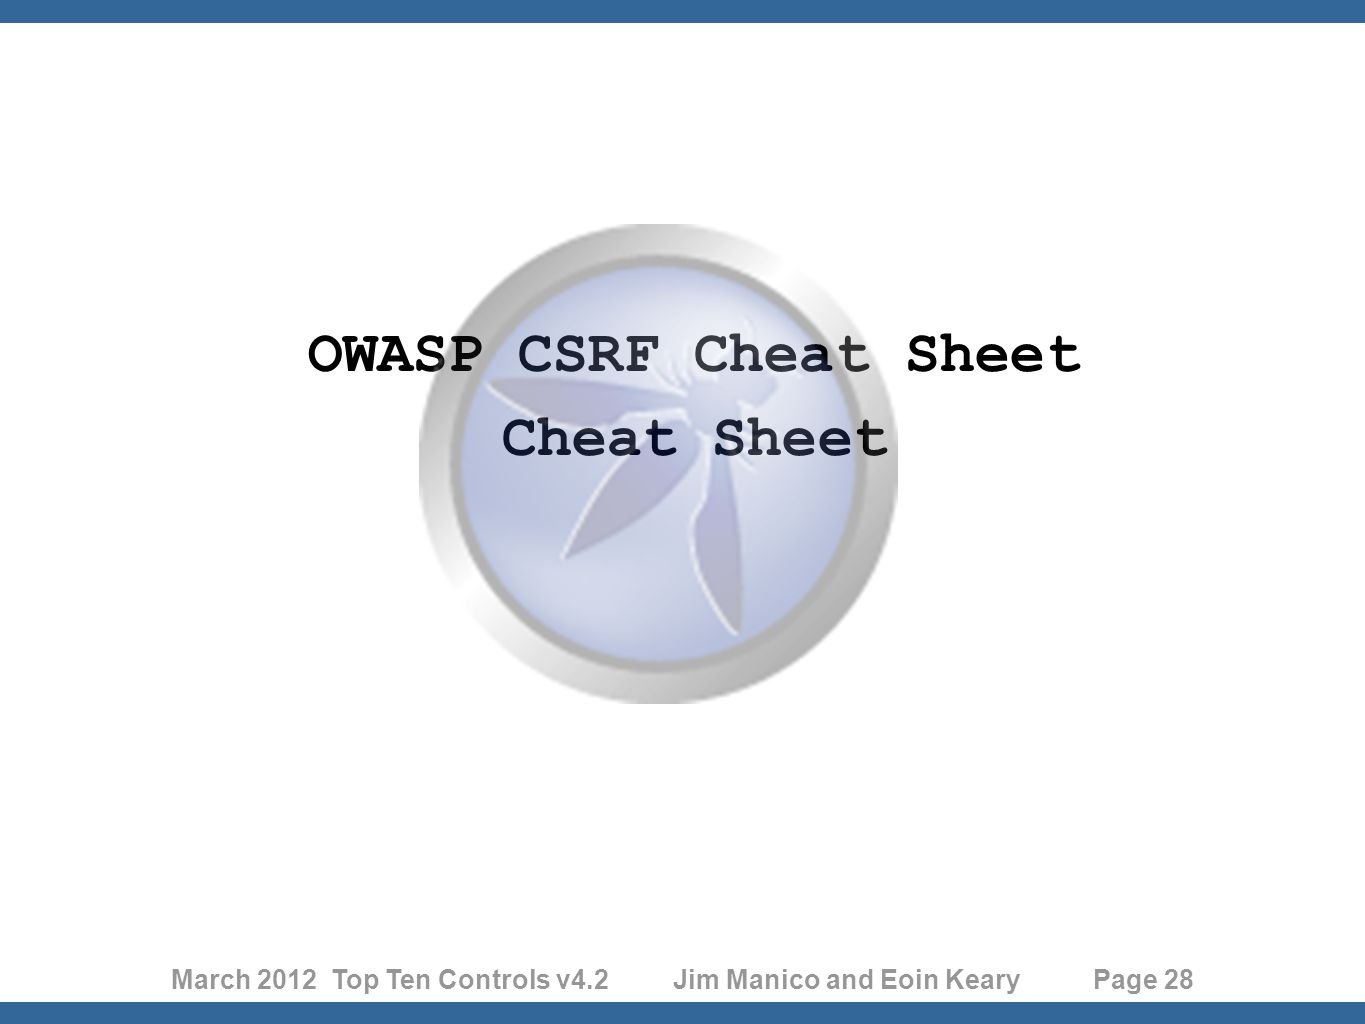 March 2012 Top Ten Controls v4.2 Jim Manico and Eoin Keary Page 28 OWASP CSRF Cheat Sheet Cheat Sheet